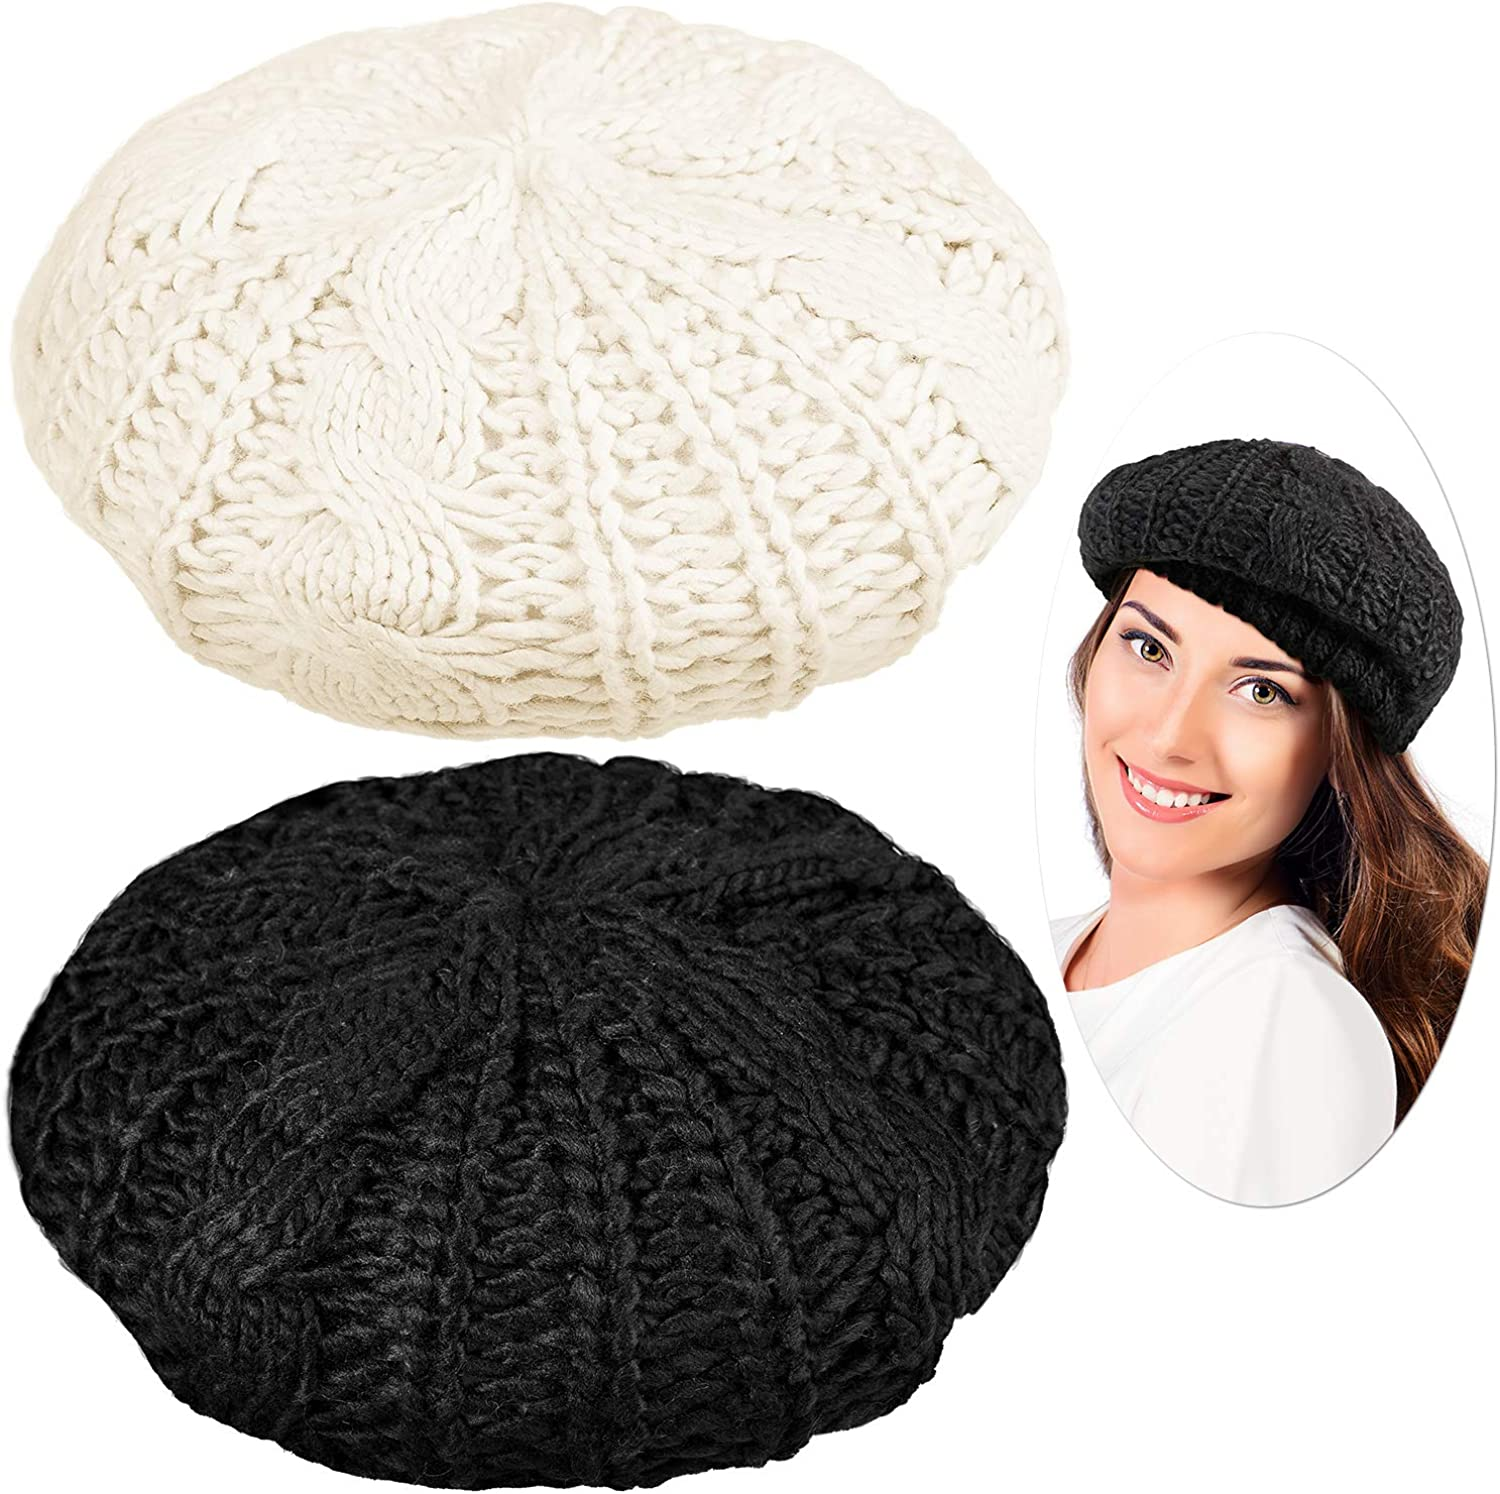 SATINIOR 2 Pieces Ladies Soft and Lightweight Crochet Solid Color Beret, One Size Casual Beanie